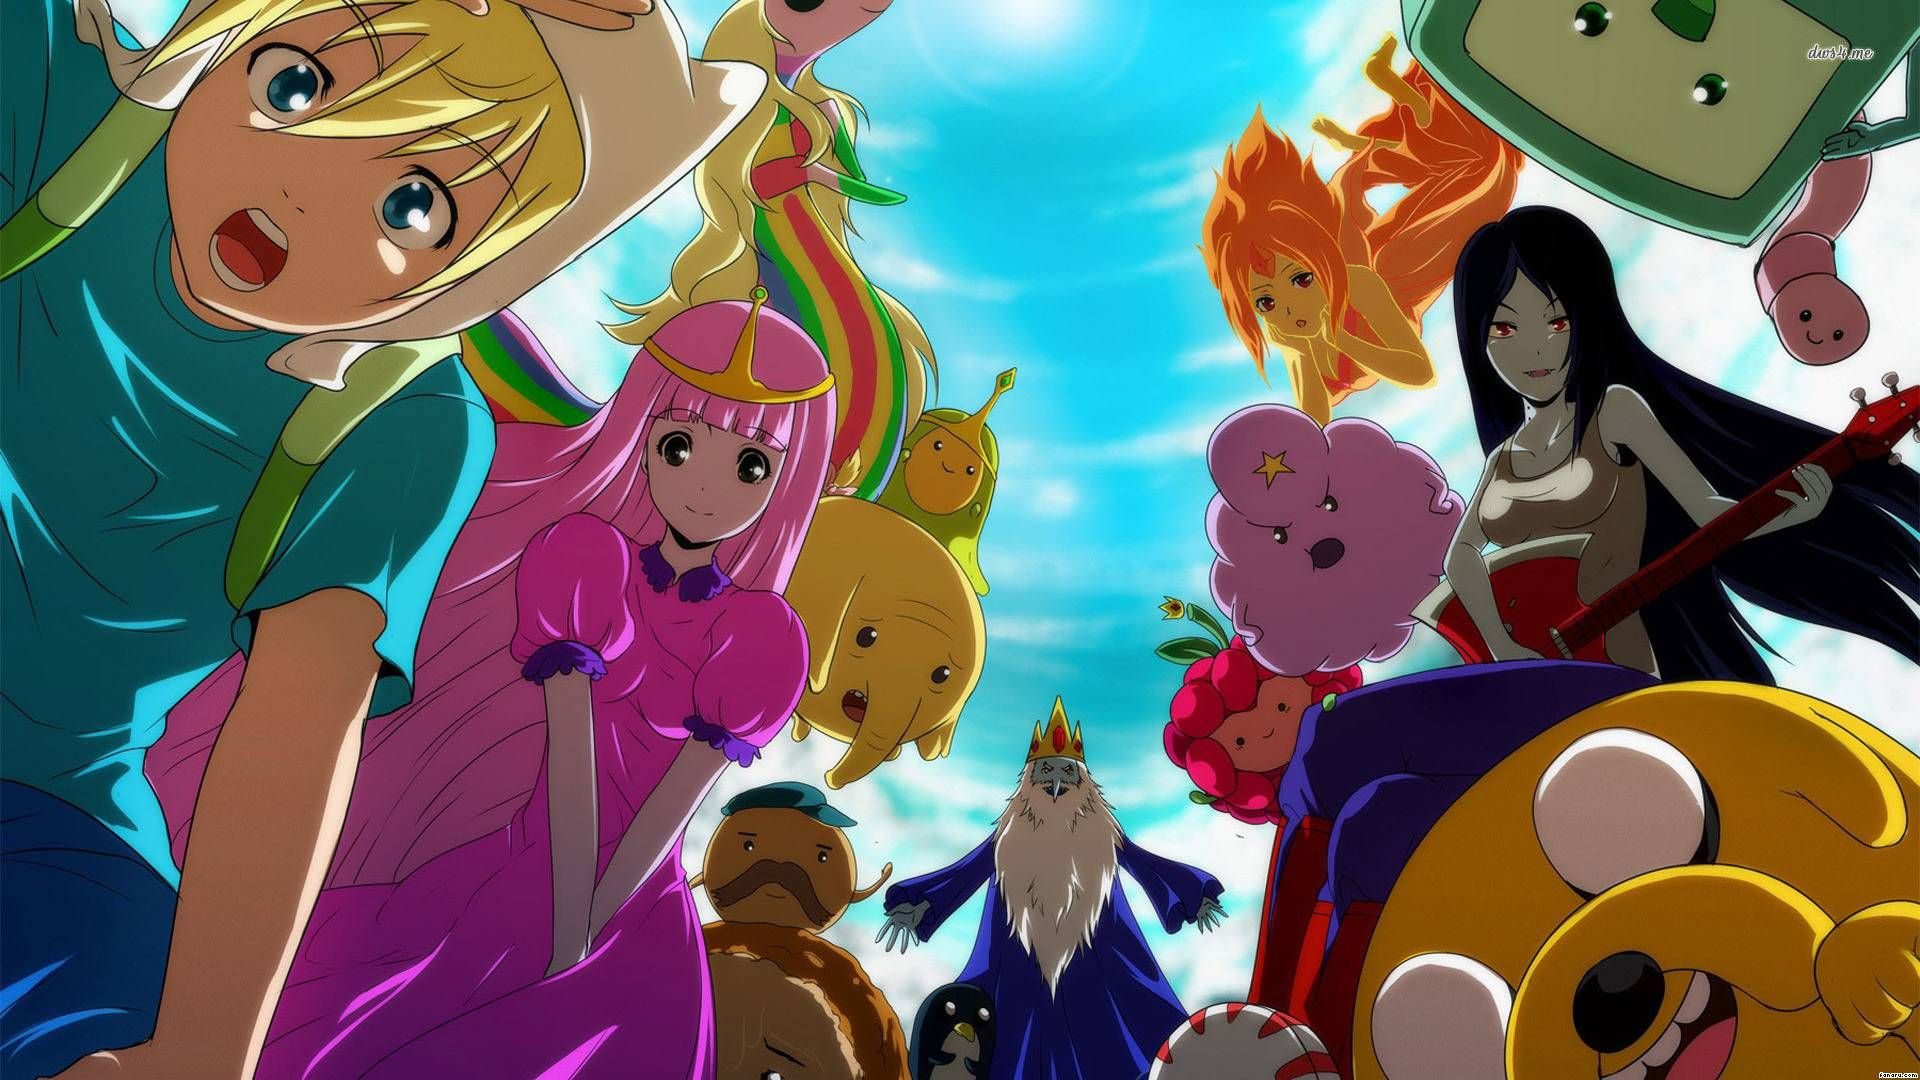 I Like This Picture A Lot For Some Reason Adventure Time